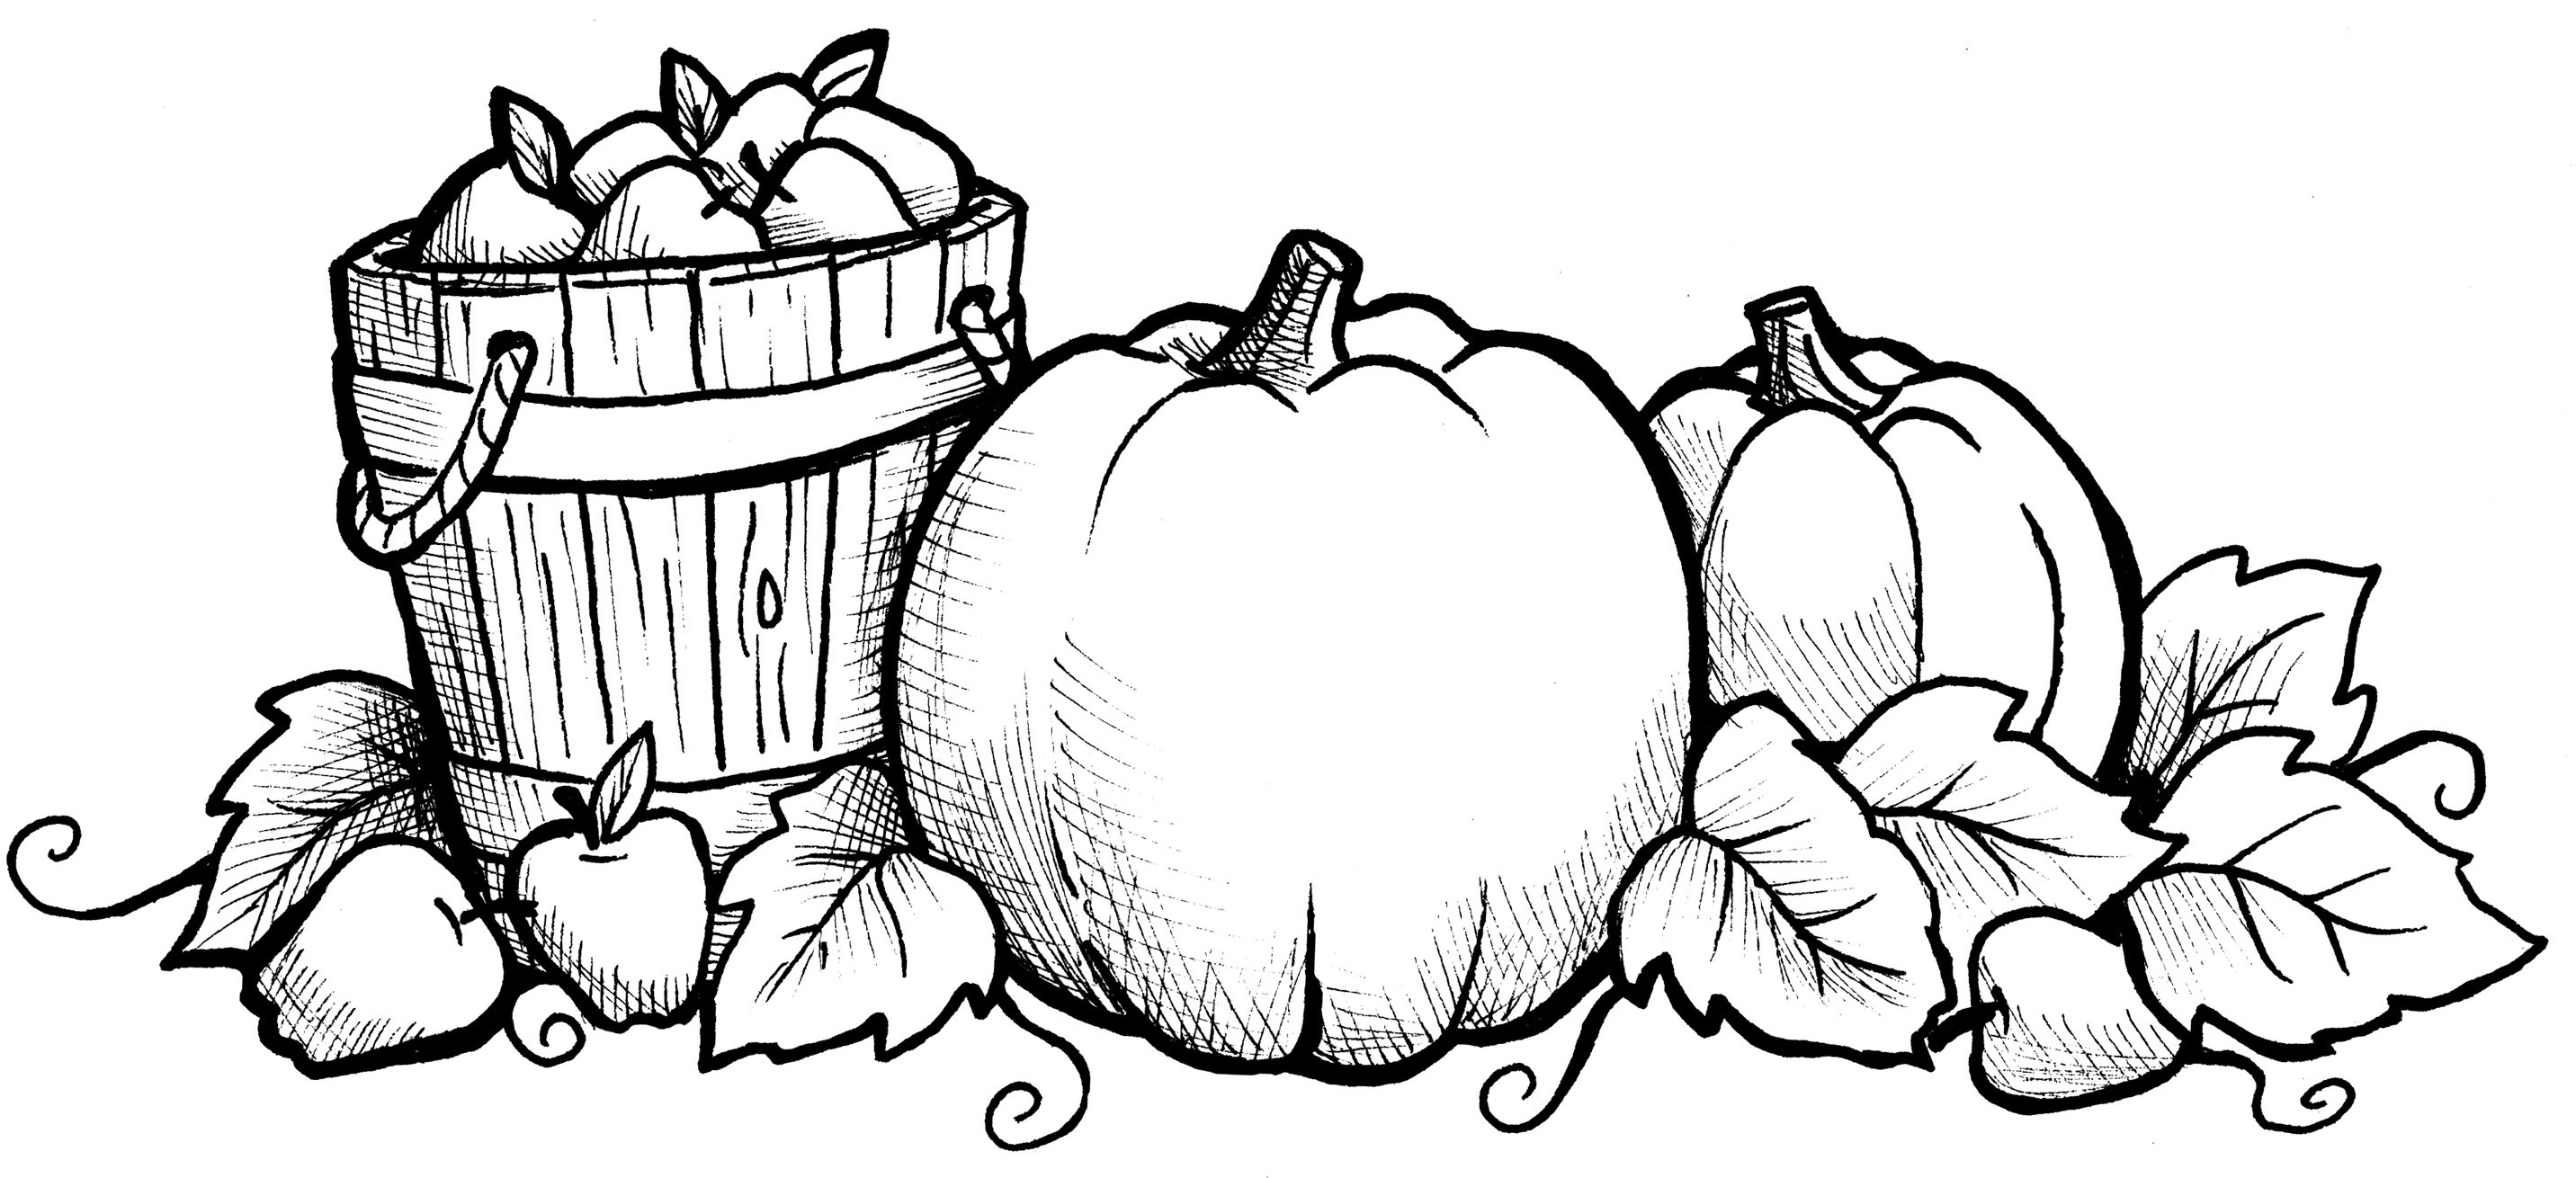 pumpkin colouring page pumpkin two simple pumpkin to color coloring pages colouring pumpkin page